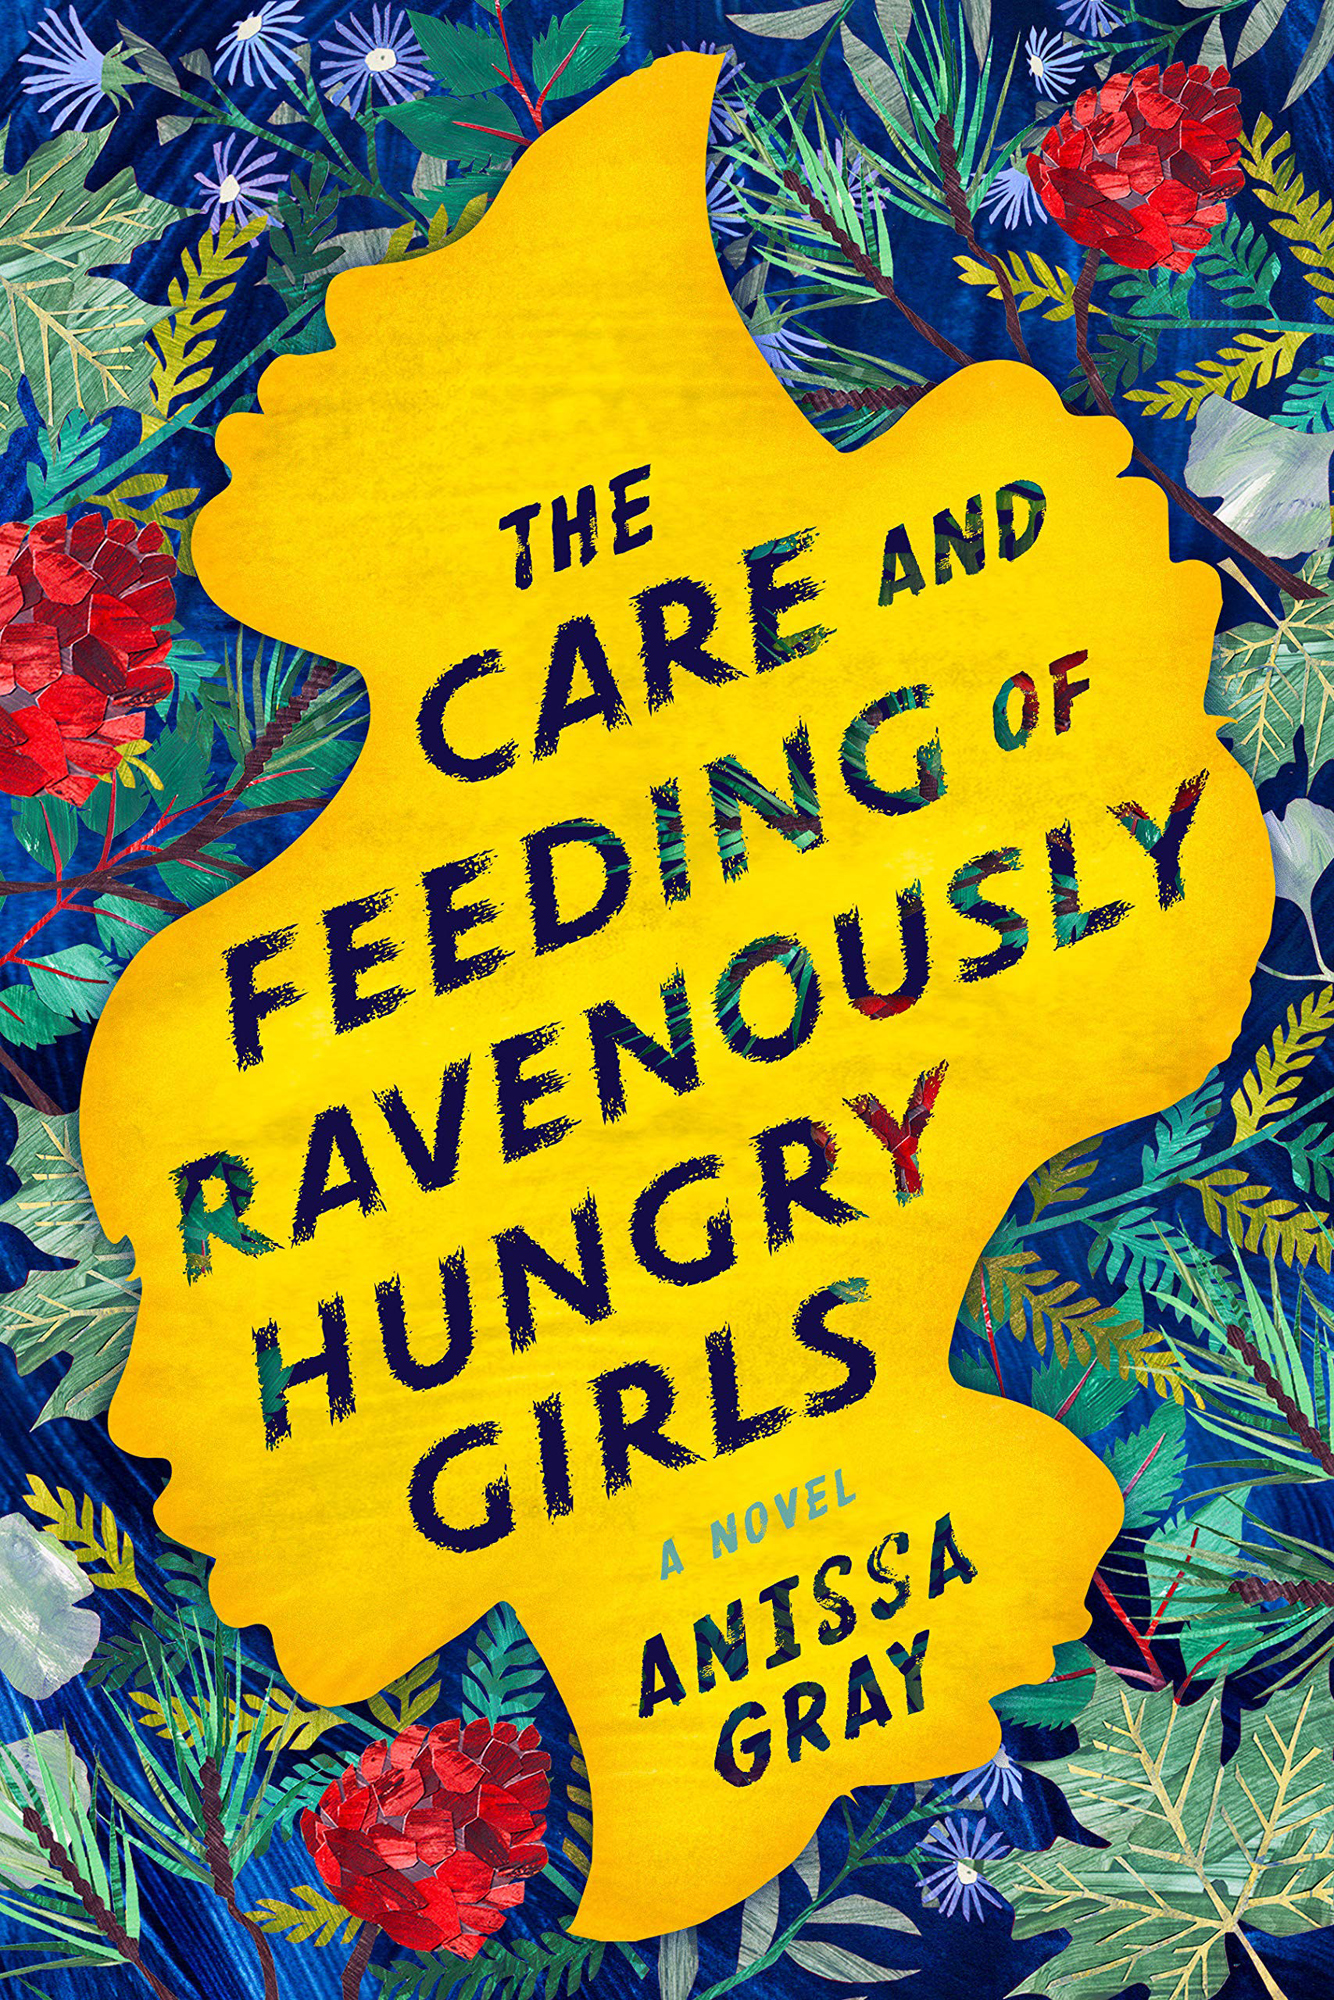 ravenously-hungry-girls-1-2000